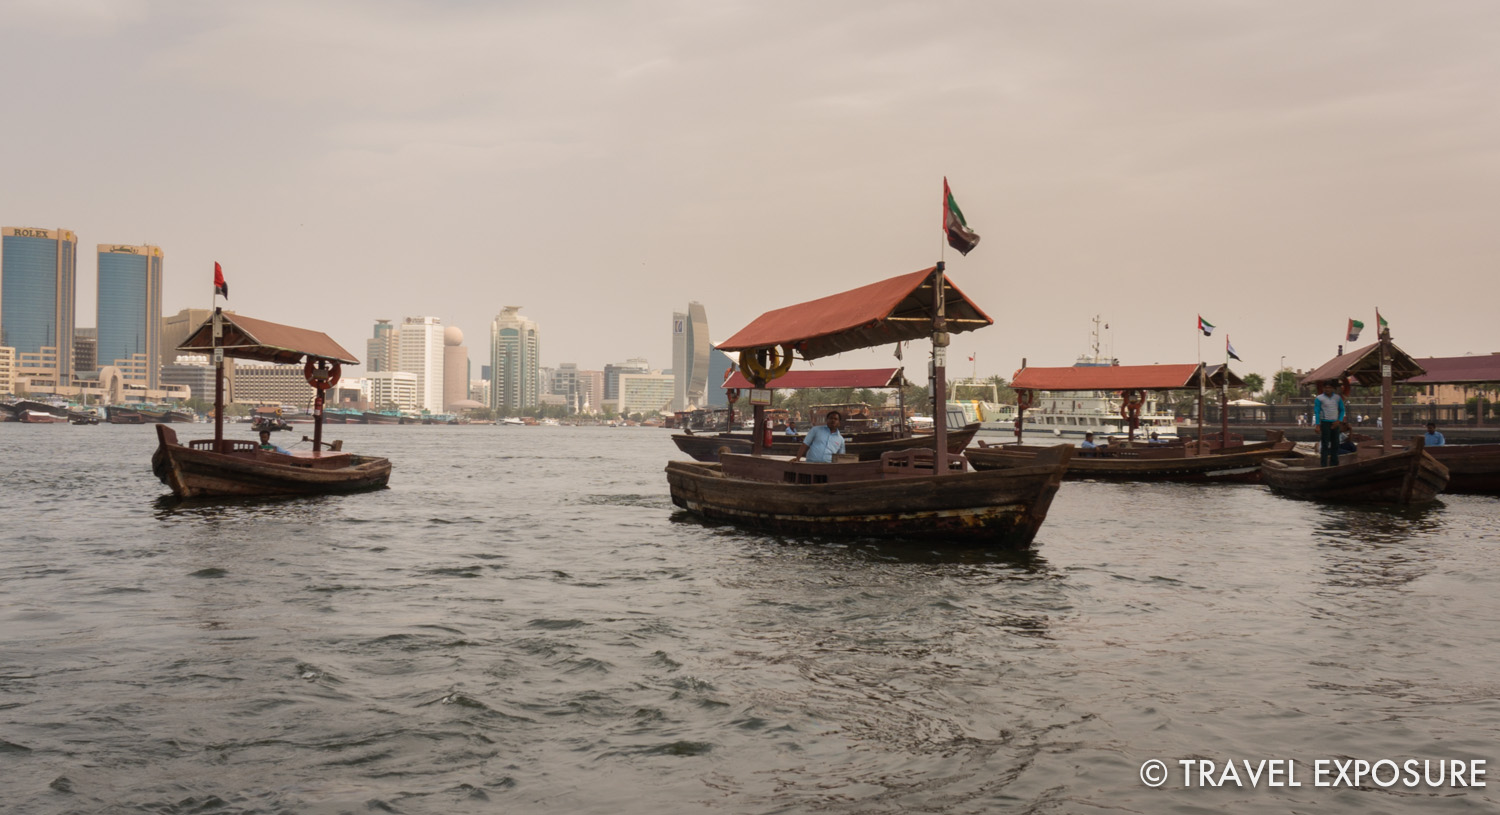 Crossing the Dubai Creek in an Abra, a traditional boat made of wood.